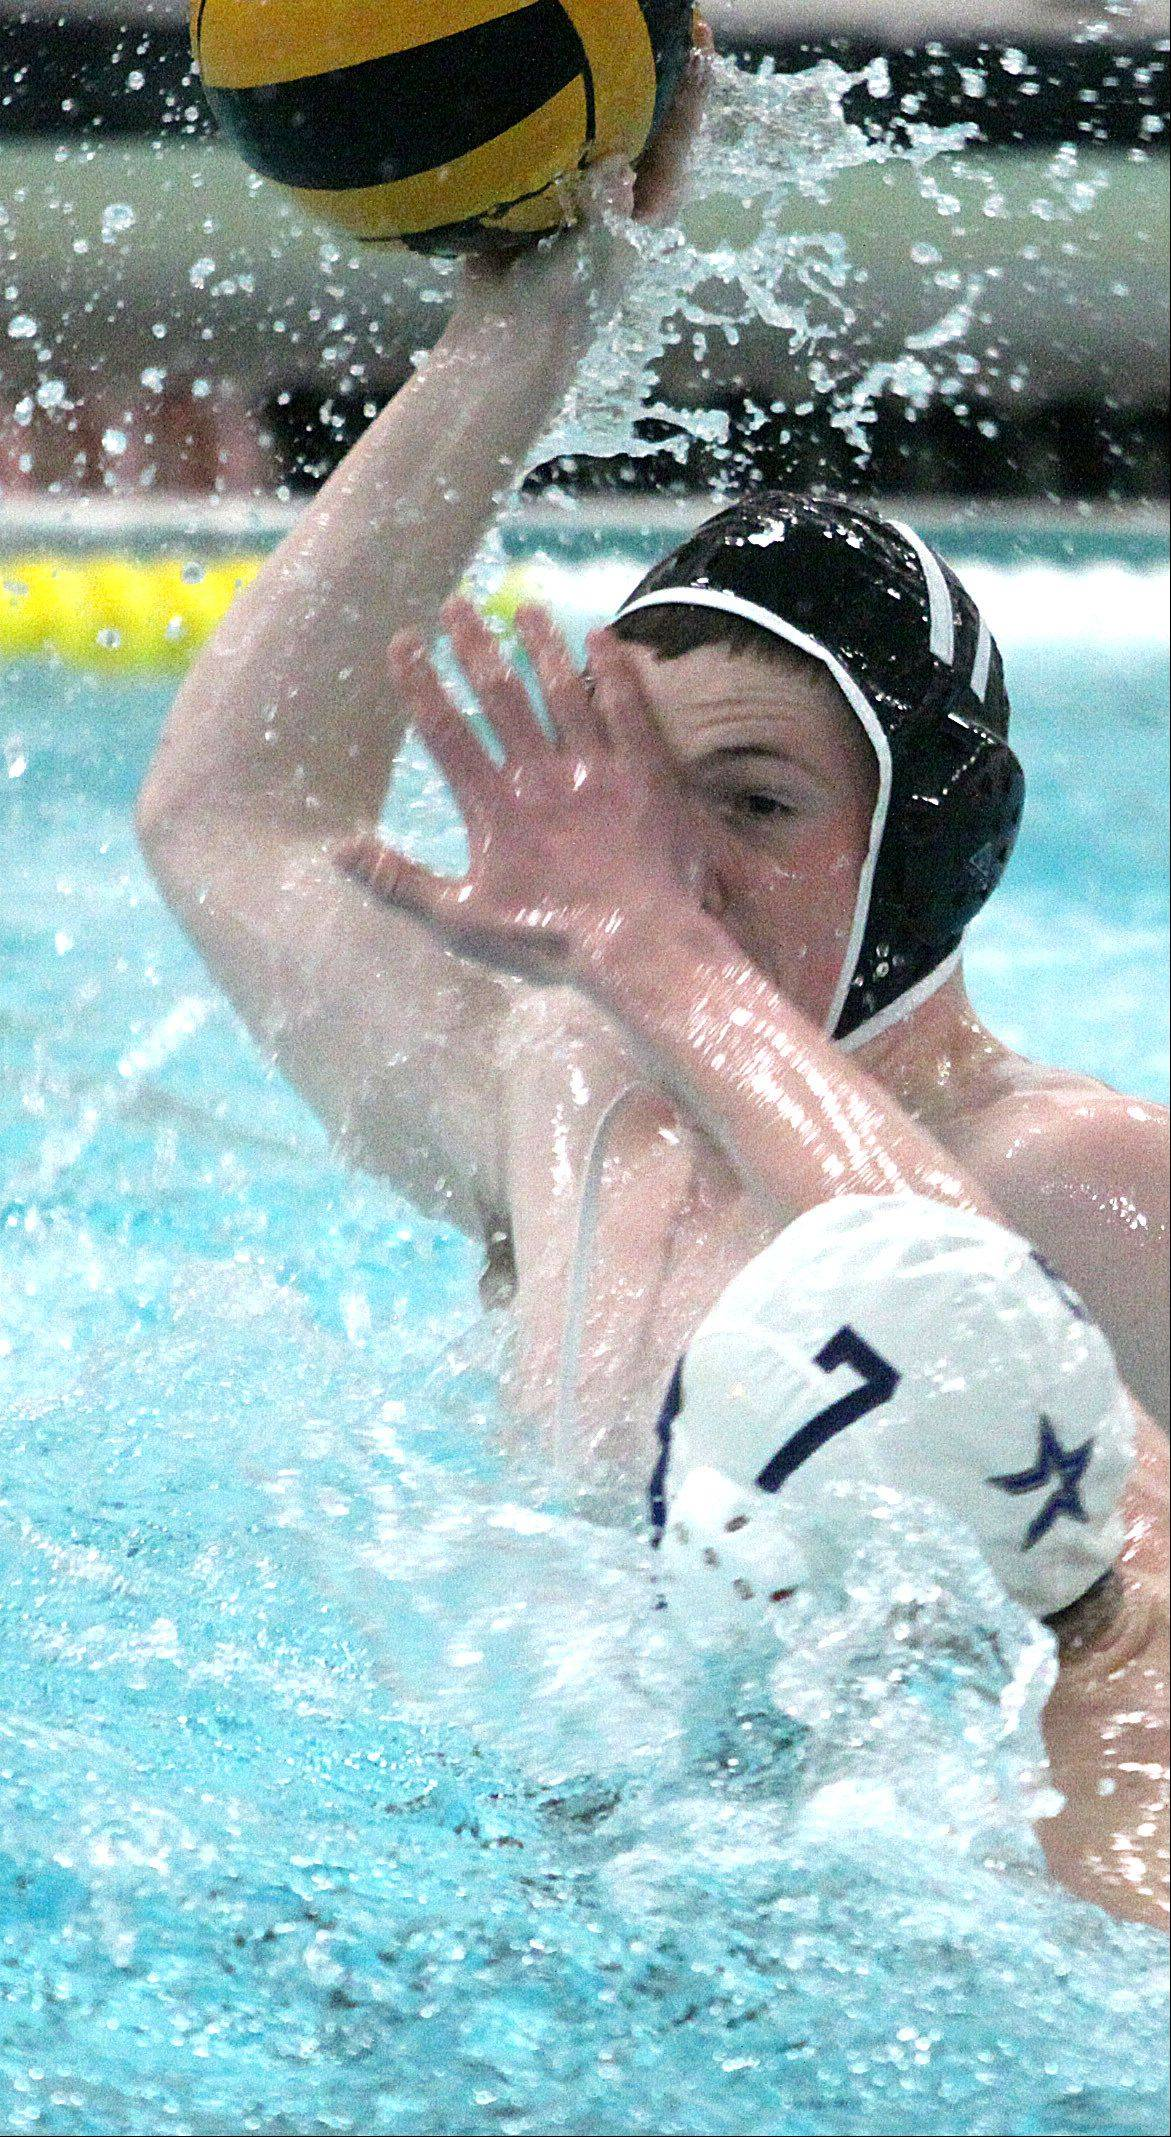 St Charles East's Max Schmitt prepares for a shot on goal under pressure from St Charles North's Nathan Bawolek, front, during a varsity water polo game at John Baker Norris Recreation Center on Thursday night.